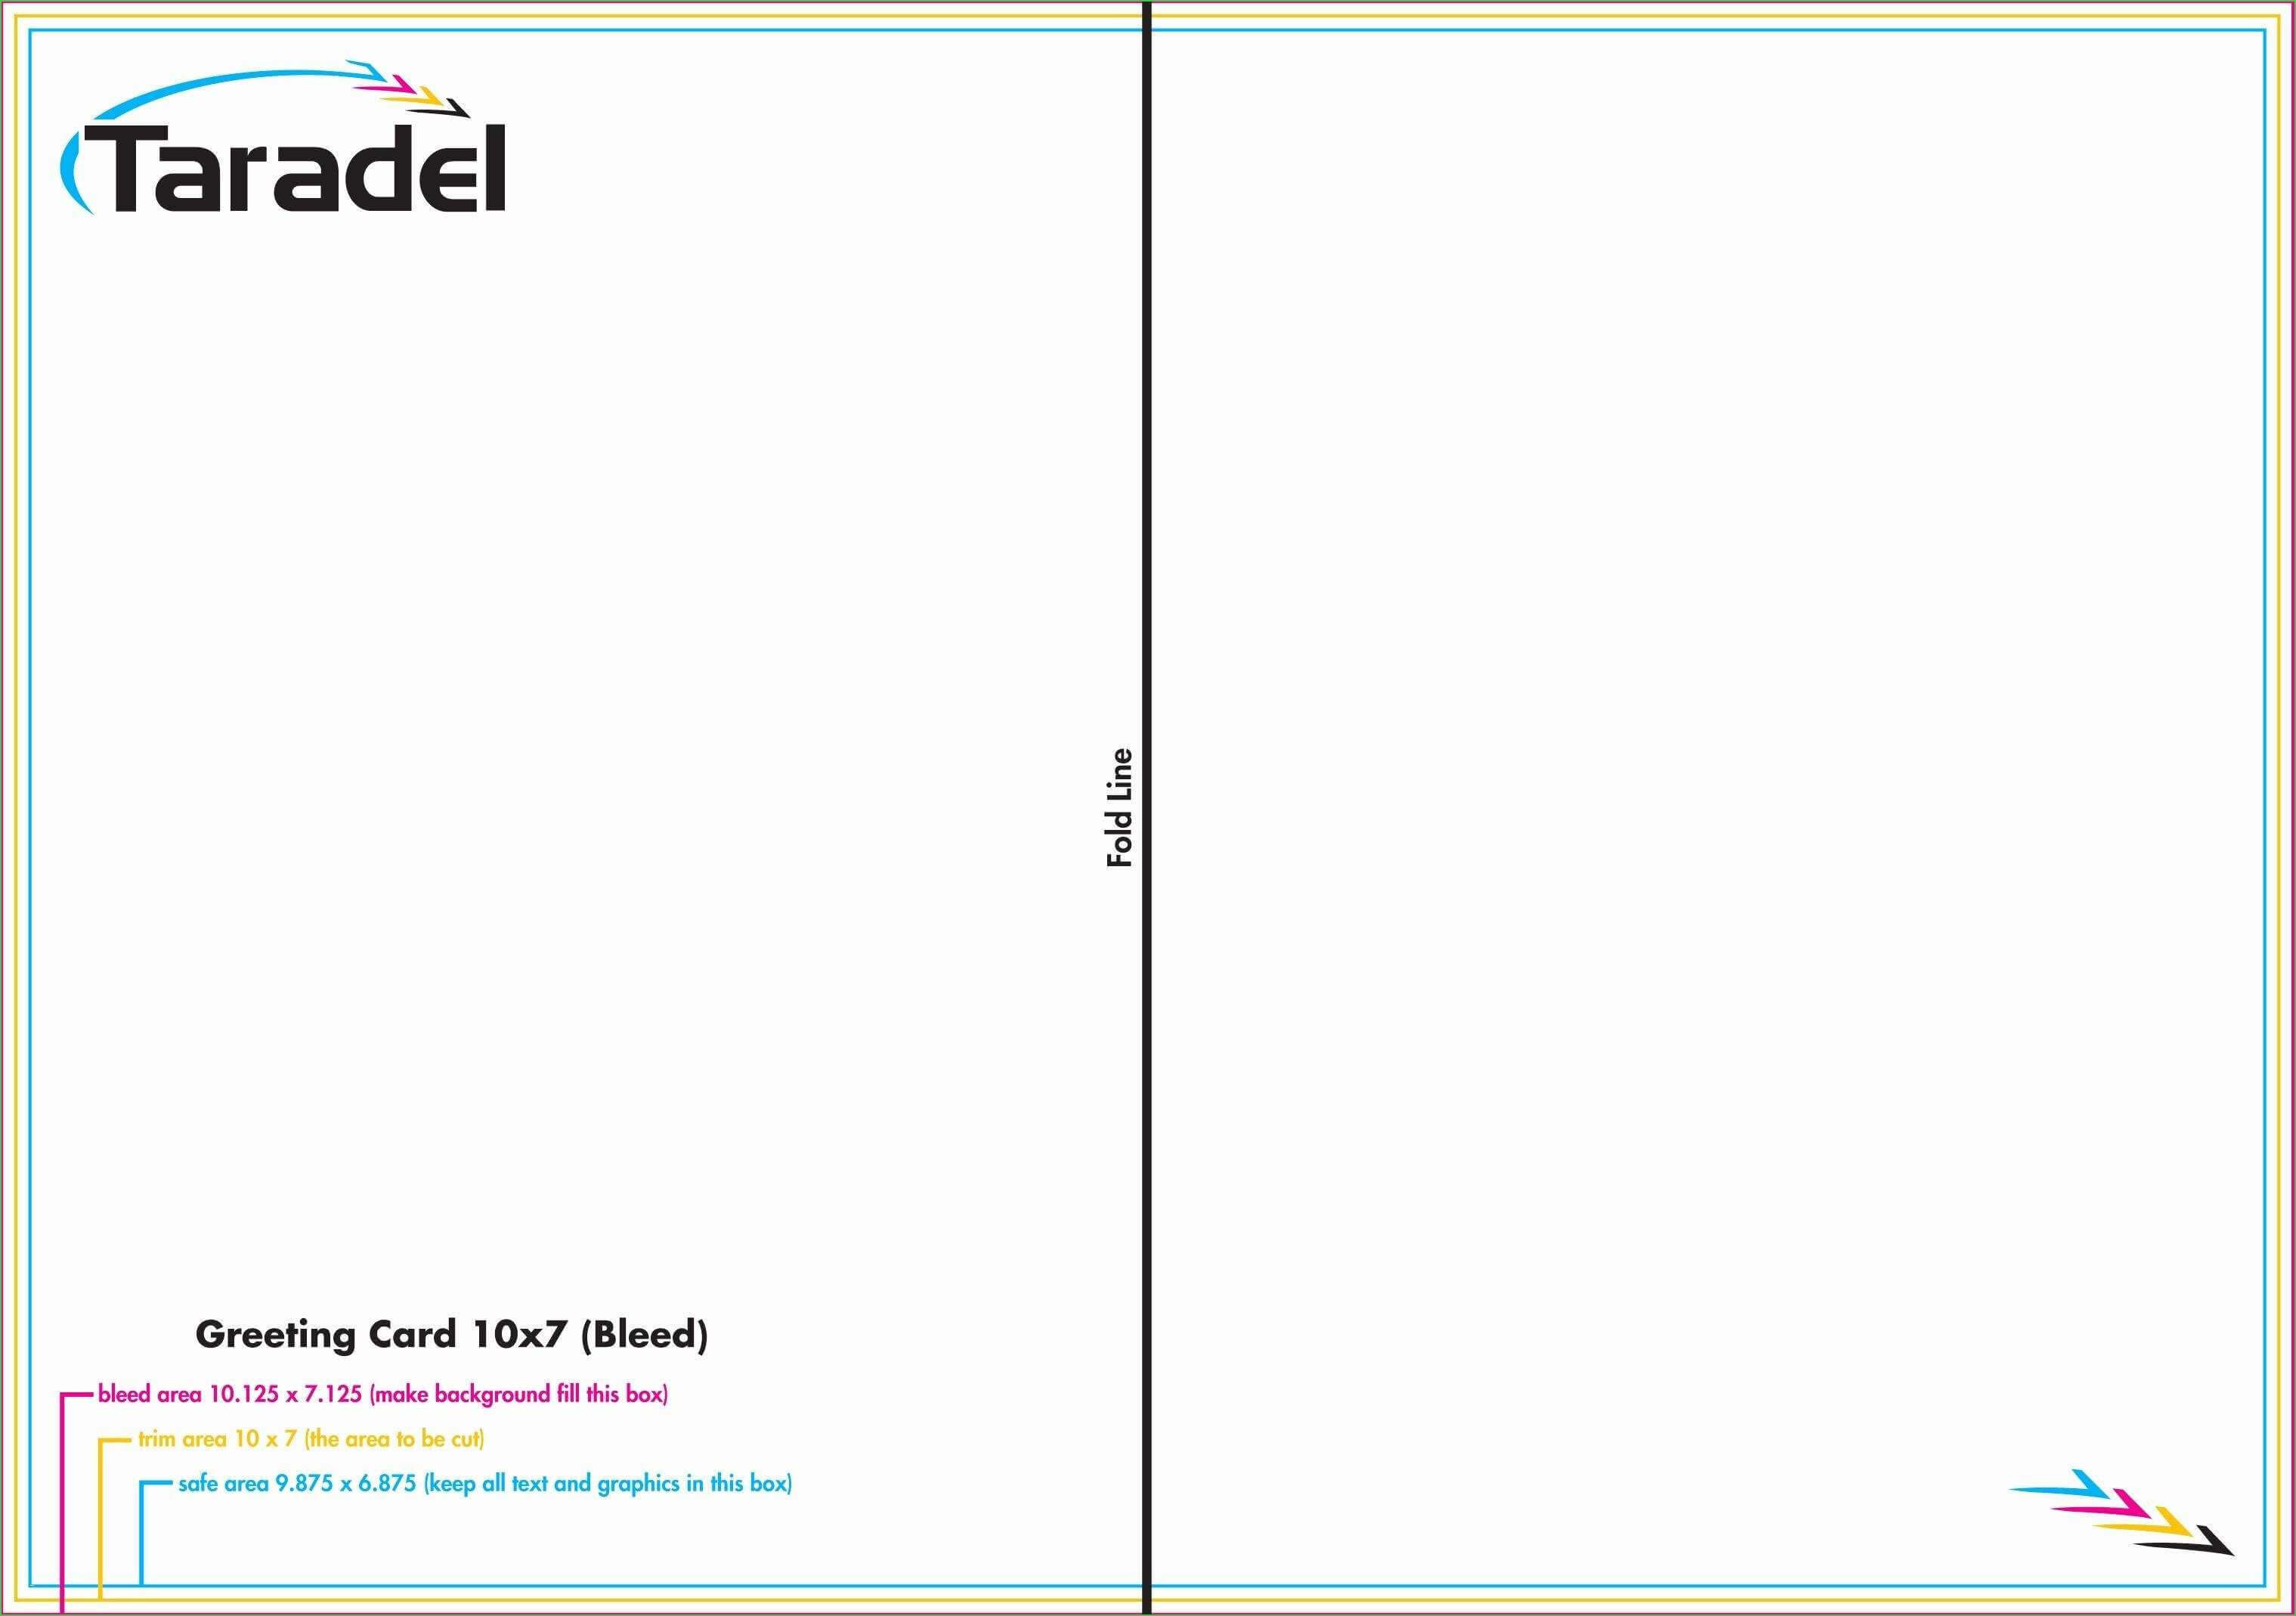 014 Greeting Card Template Photoshop Free Quarter Fold with Birthday Card Template Indesign